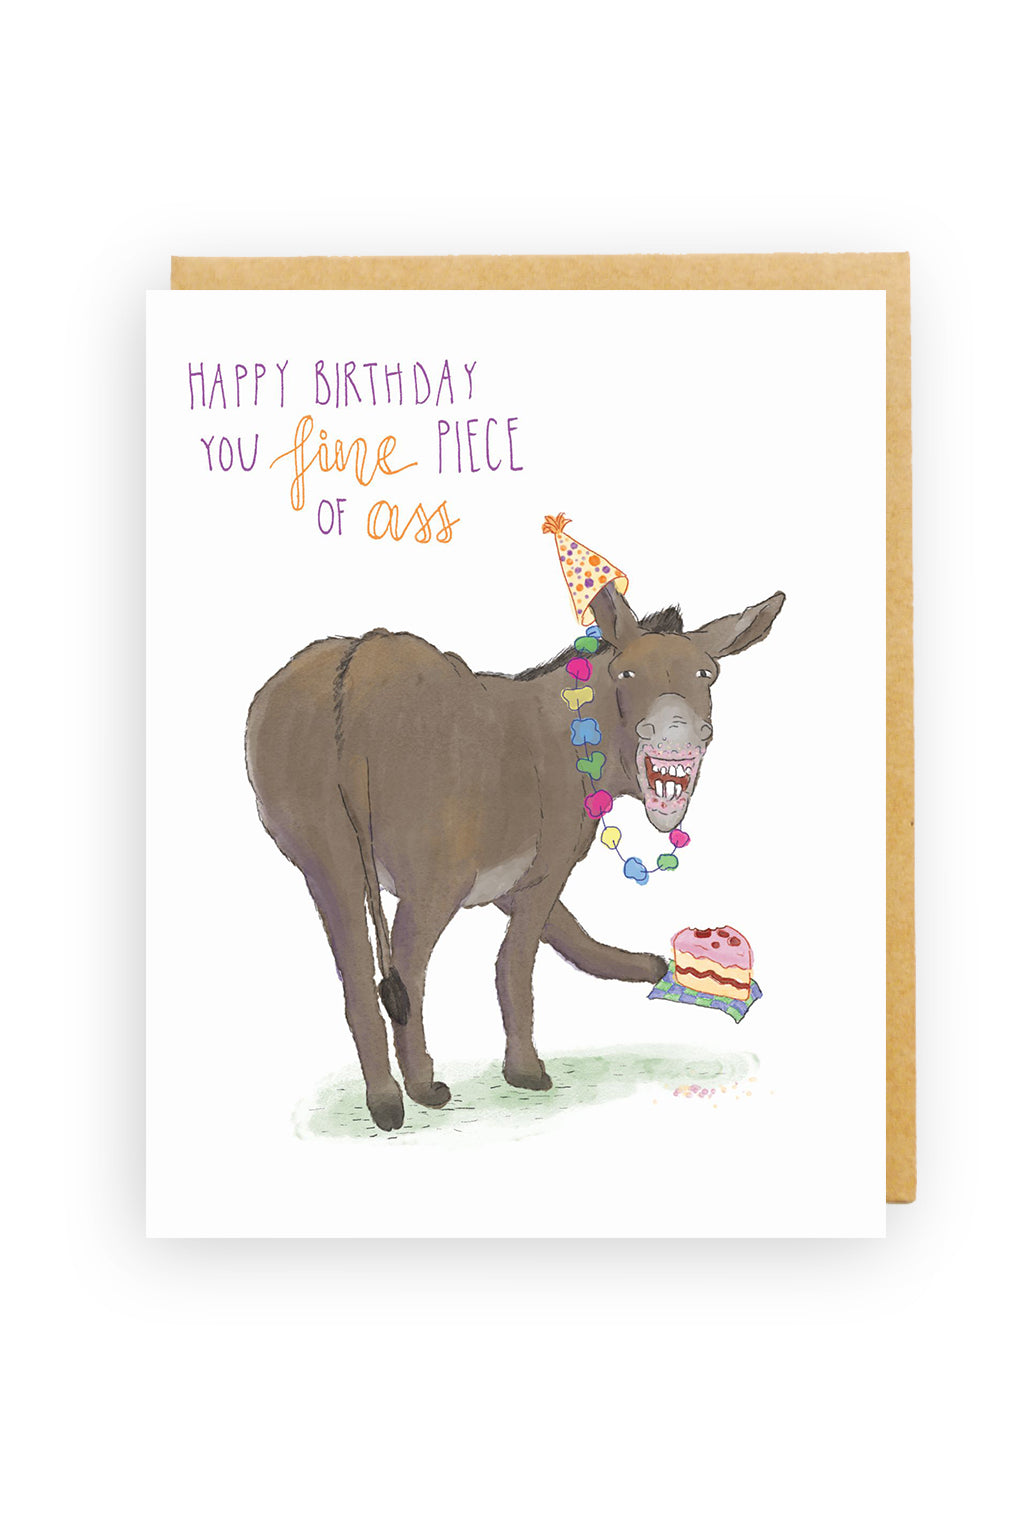 Squirrel Design Studio-Fine Piece of Ass - Birthday Card-Mott and Mulberry